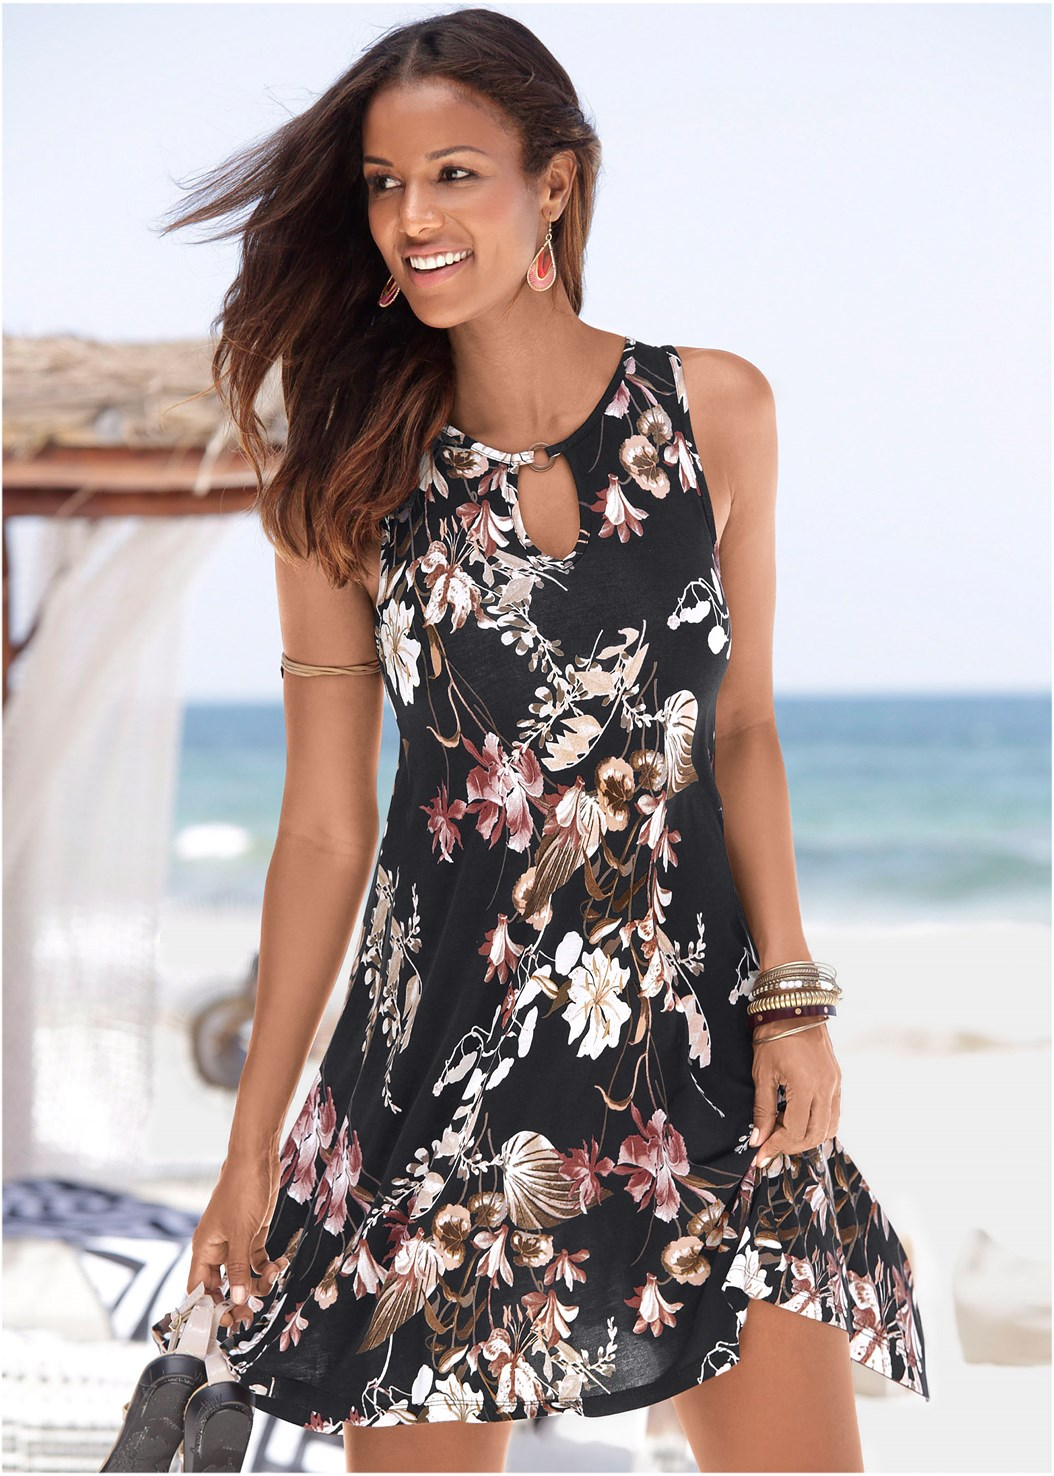 Floral Printed Casual Dress,Naked T-Shirt Bra,Long Circle Earrings